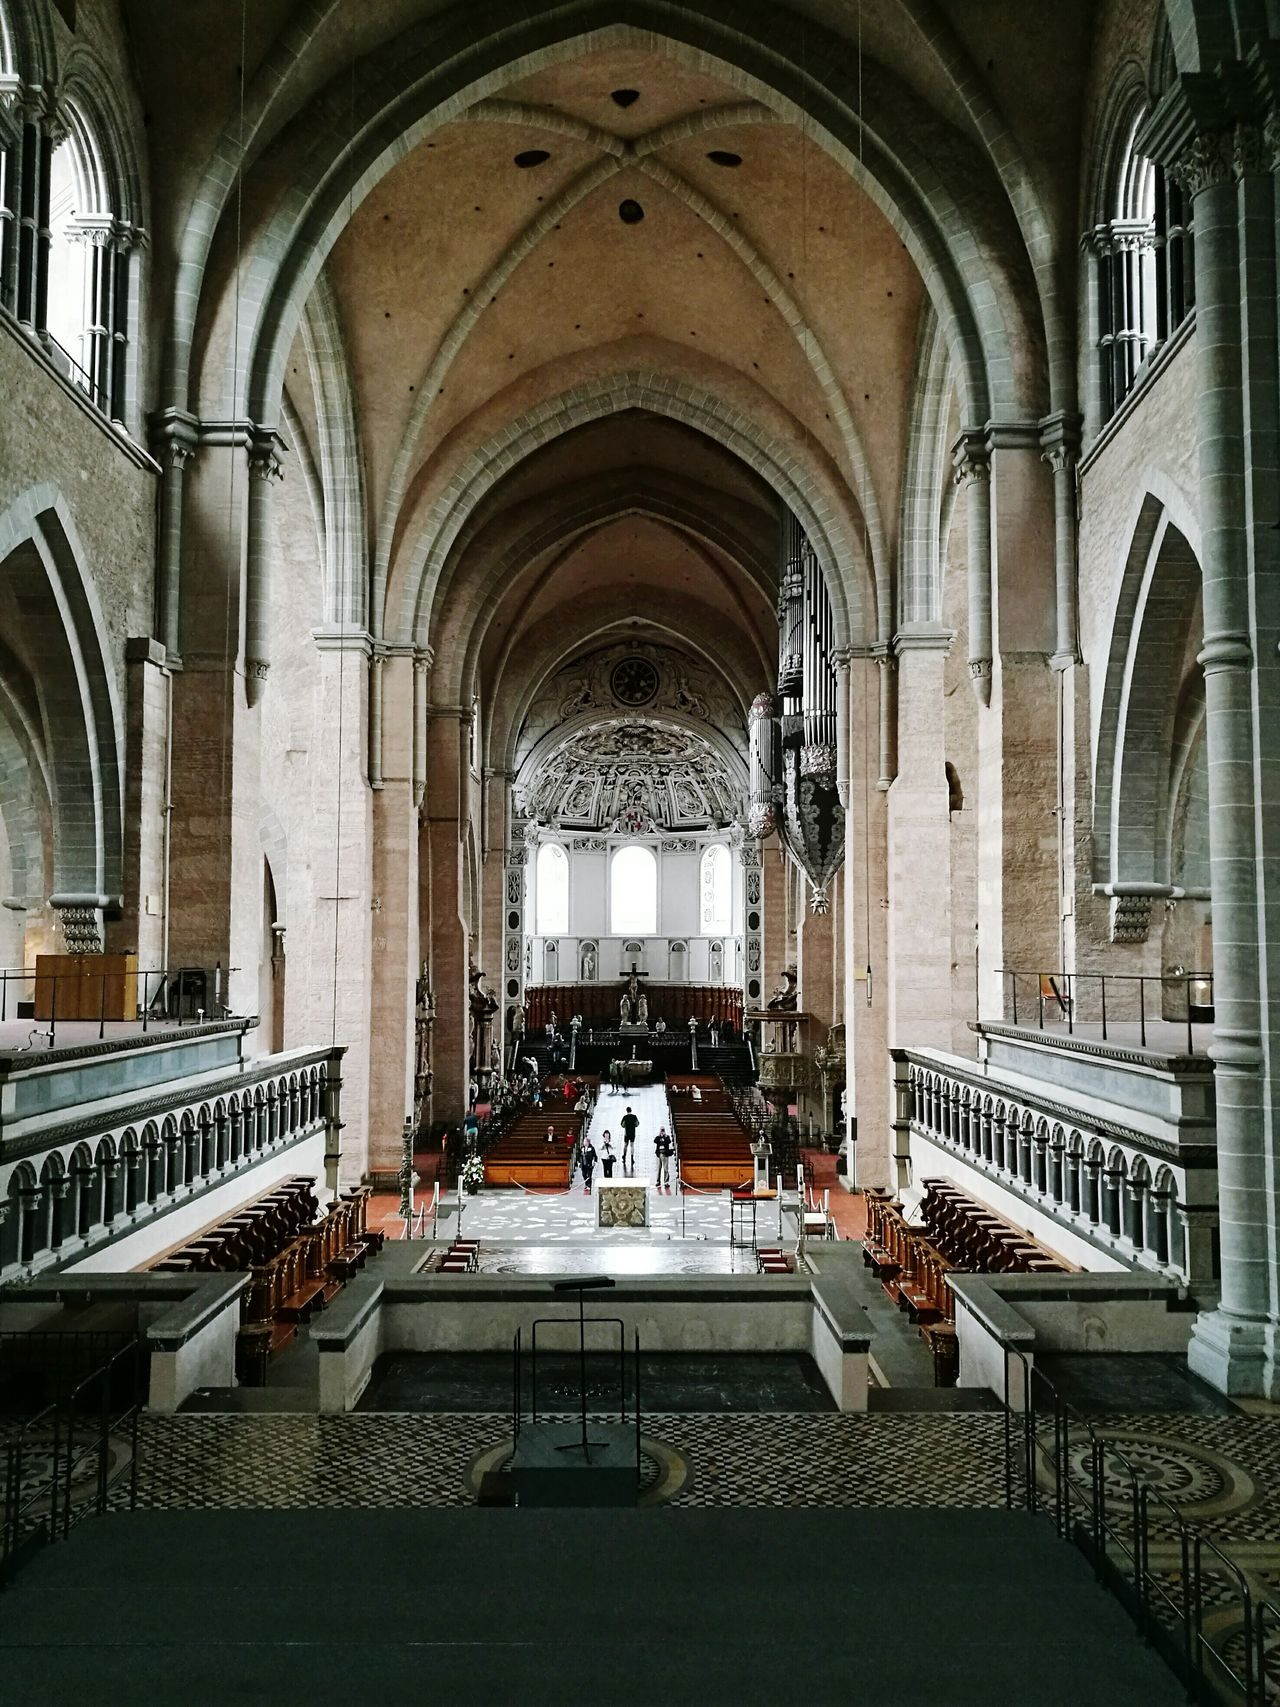 Dom Cathedral, Trier, Germany. Dom Cathedral Trier Germany Renaissance Architecture Baroque Rococo Arch Architecture Roman Medieval Church Holy Religion Religious  Travel Travel Photography Leicacamera HuaweiP9 Huawei Smartphone Photography